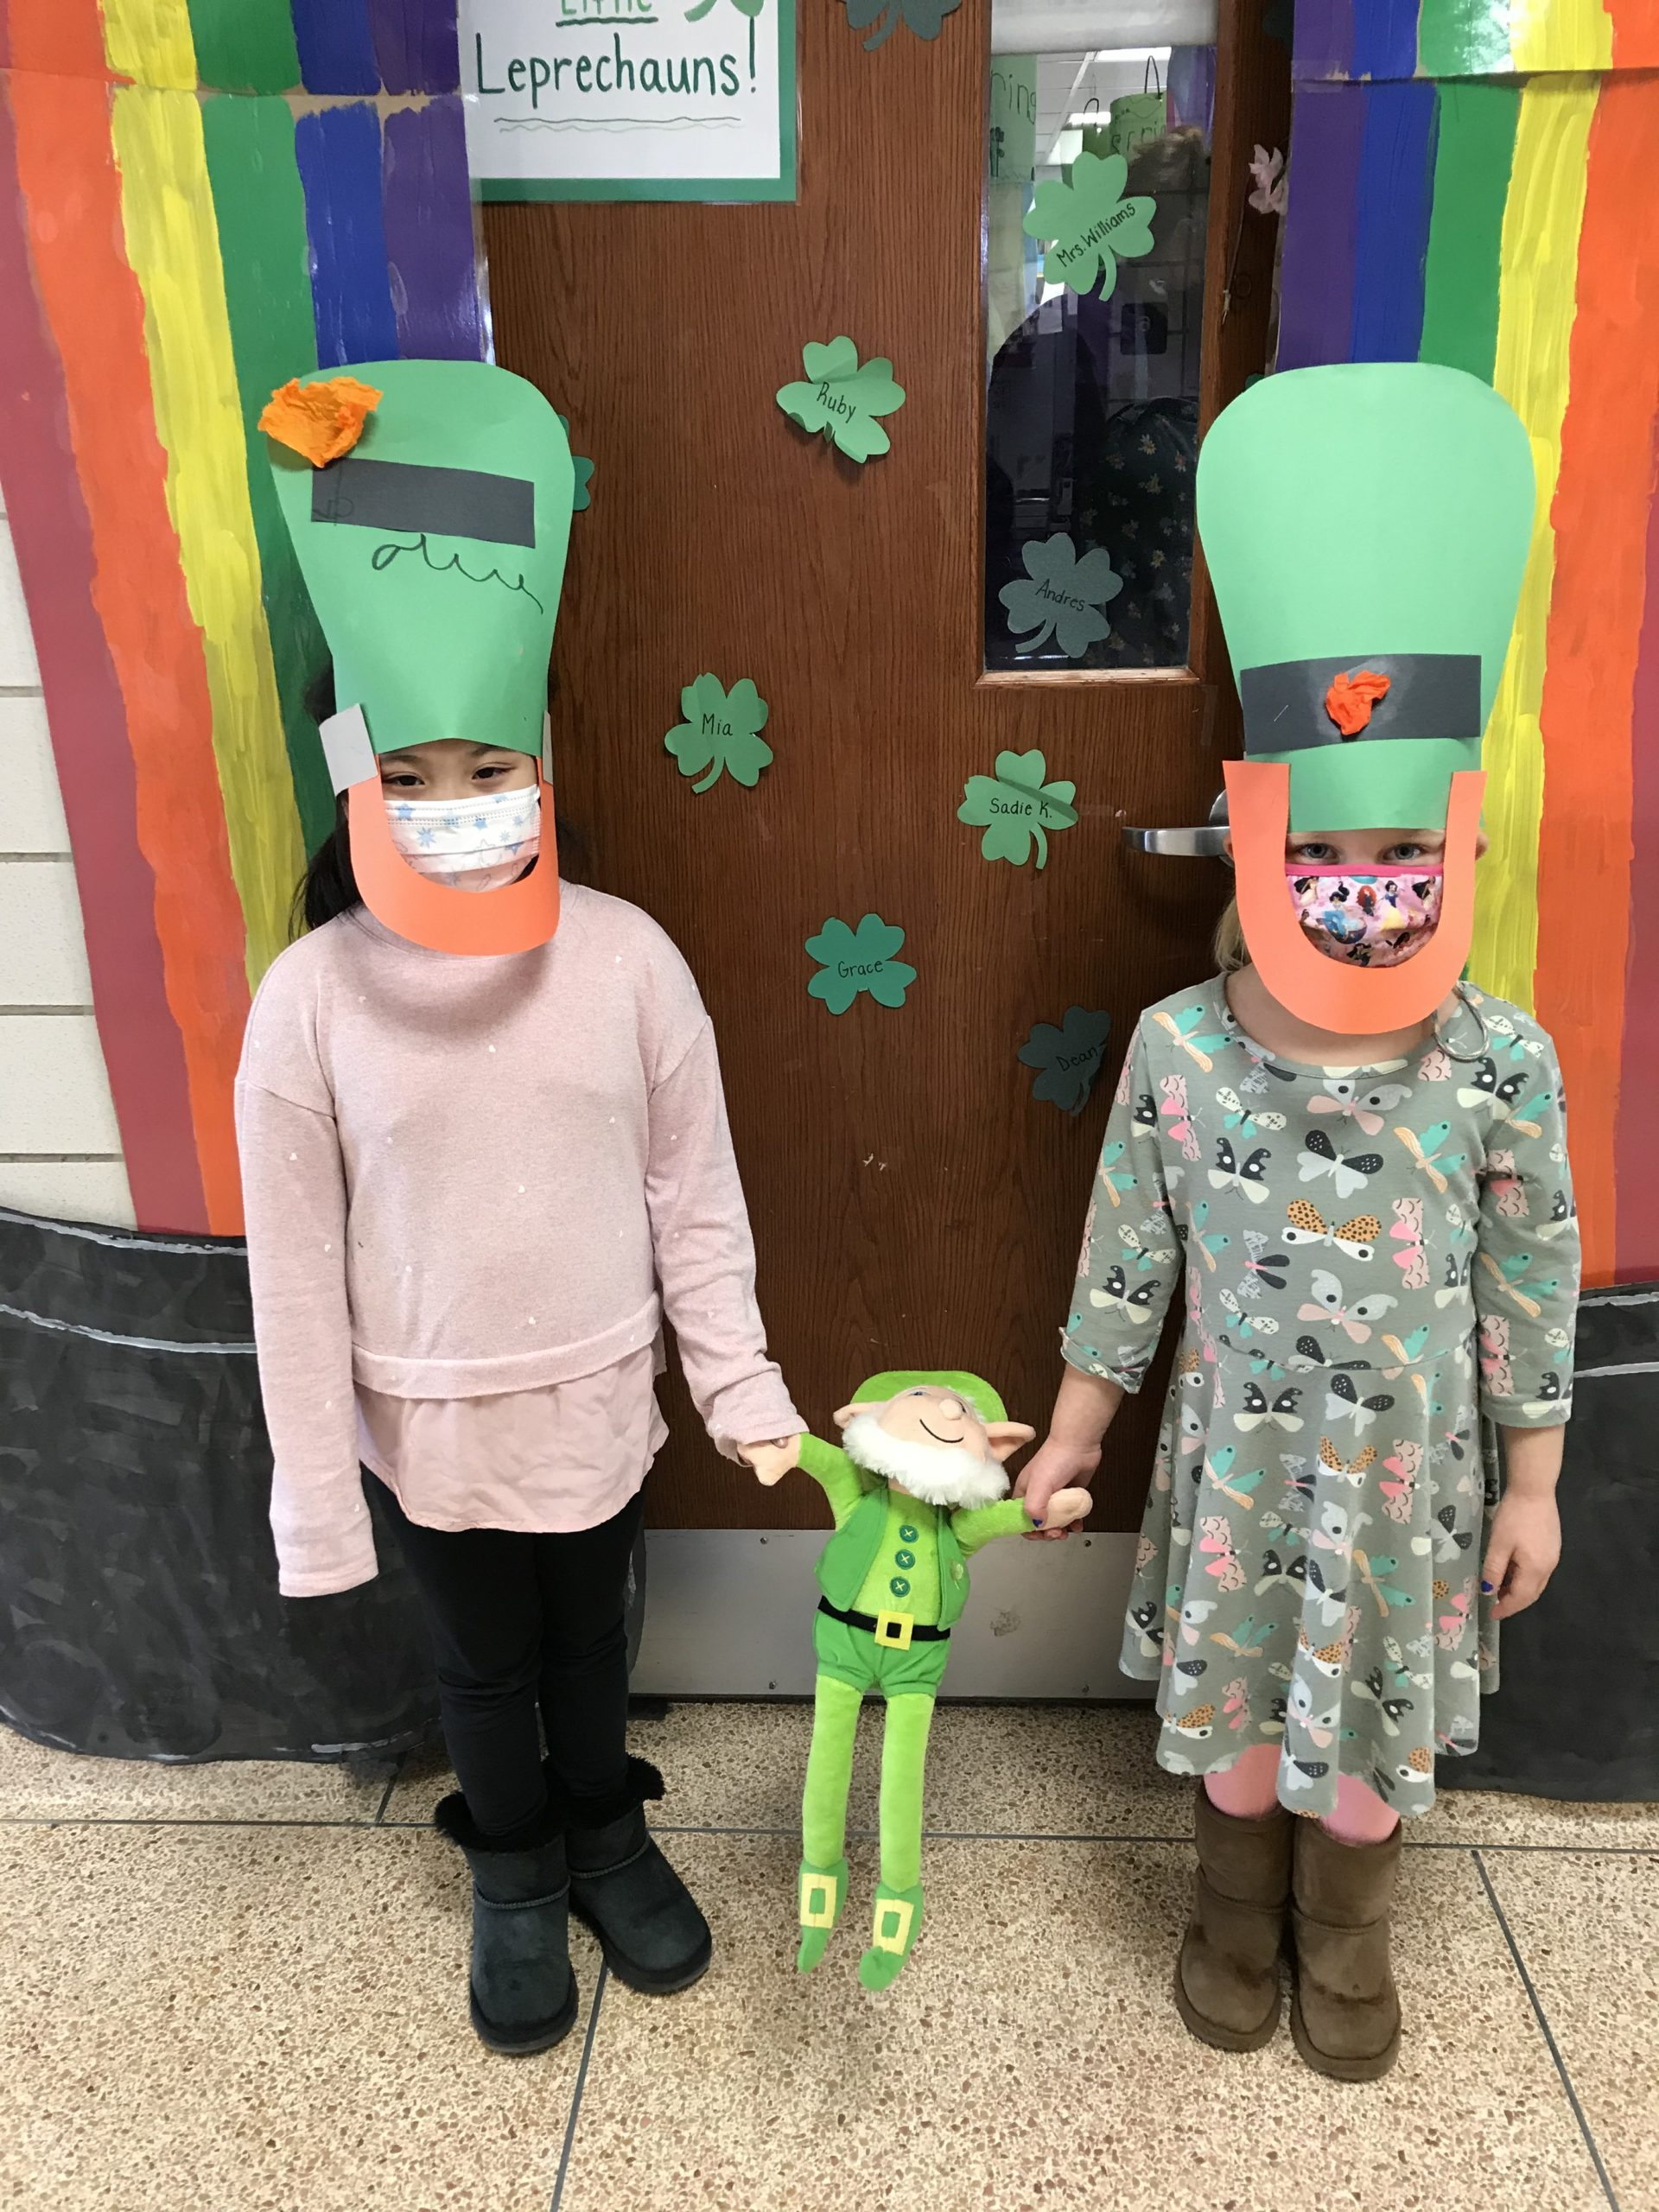 """To celebrate St. Patrick's Day, June Eaton's kindergarten class at Hampton Bays Elementary School constructed leprechaun hats, rainbows and pots of gold. They also read """"The Leprechaun's Treasure"""" and plan to build their very own leprechaun traps."""